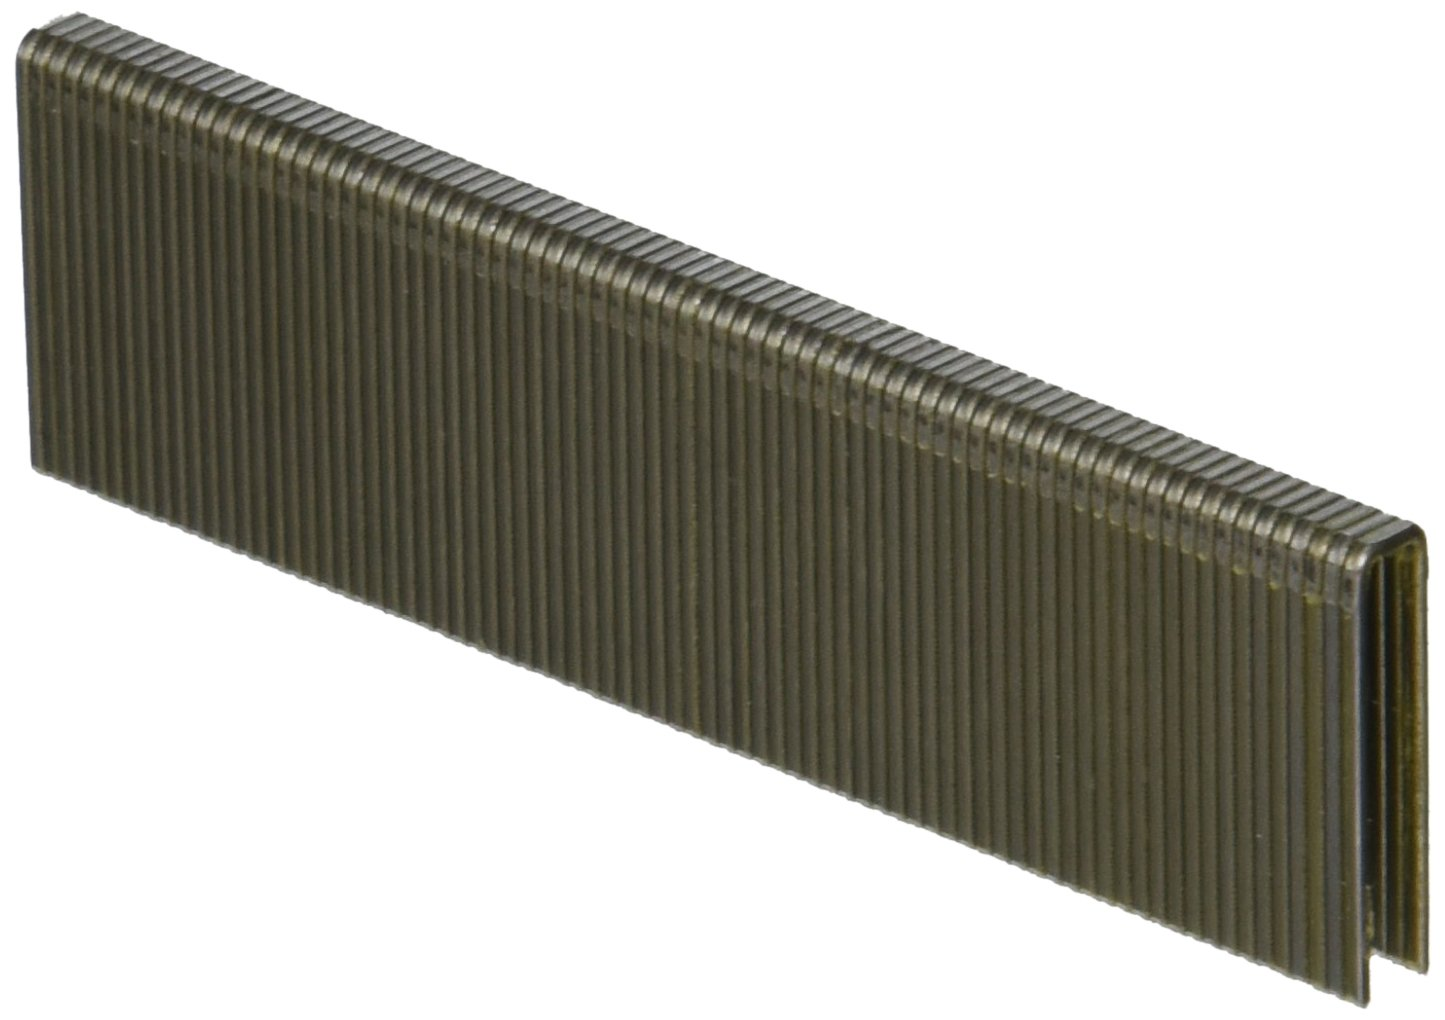 Senco L13BRBN 18 Gauge by 1/4-inch Crown by 1-inch Length Bright Basic Staples (5,000 per box)